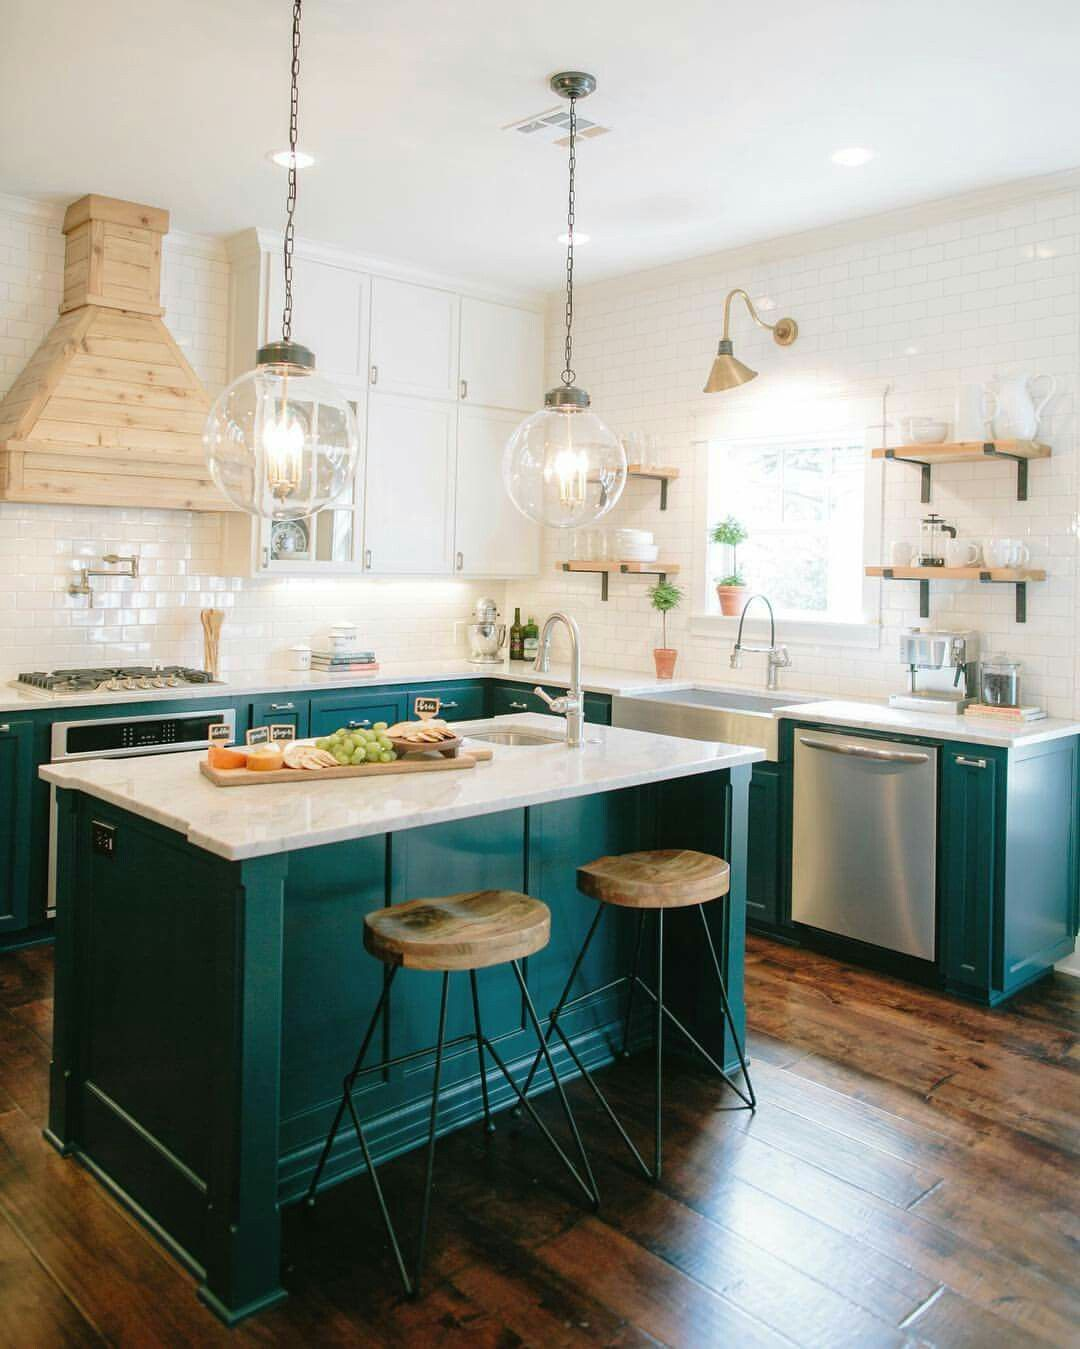 Love The Cabinet Color With Images Teal Kitchen